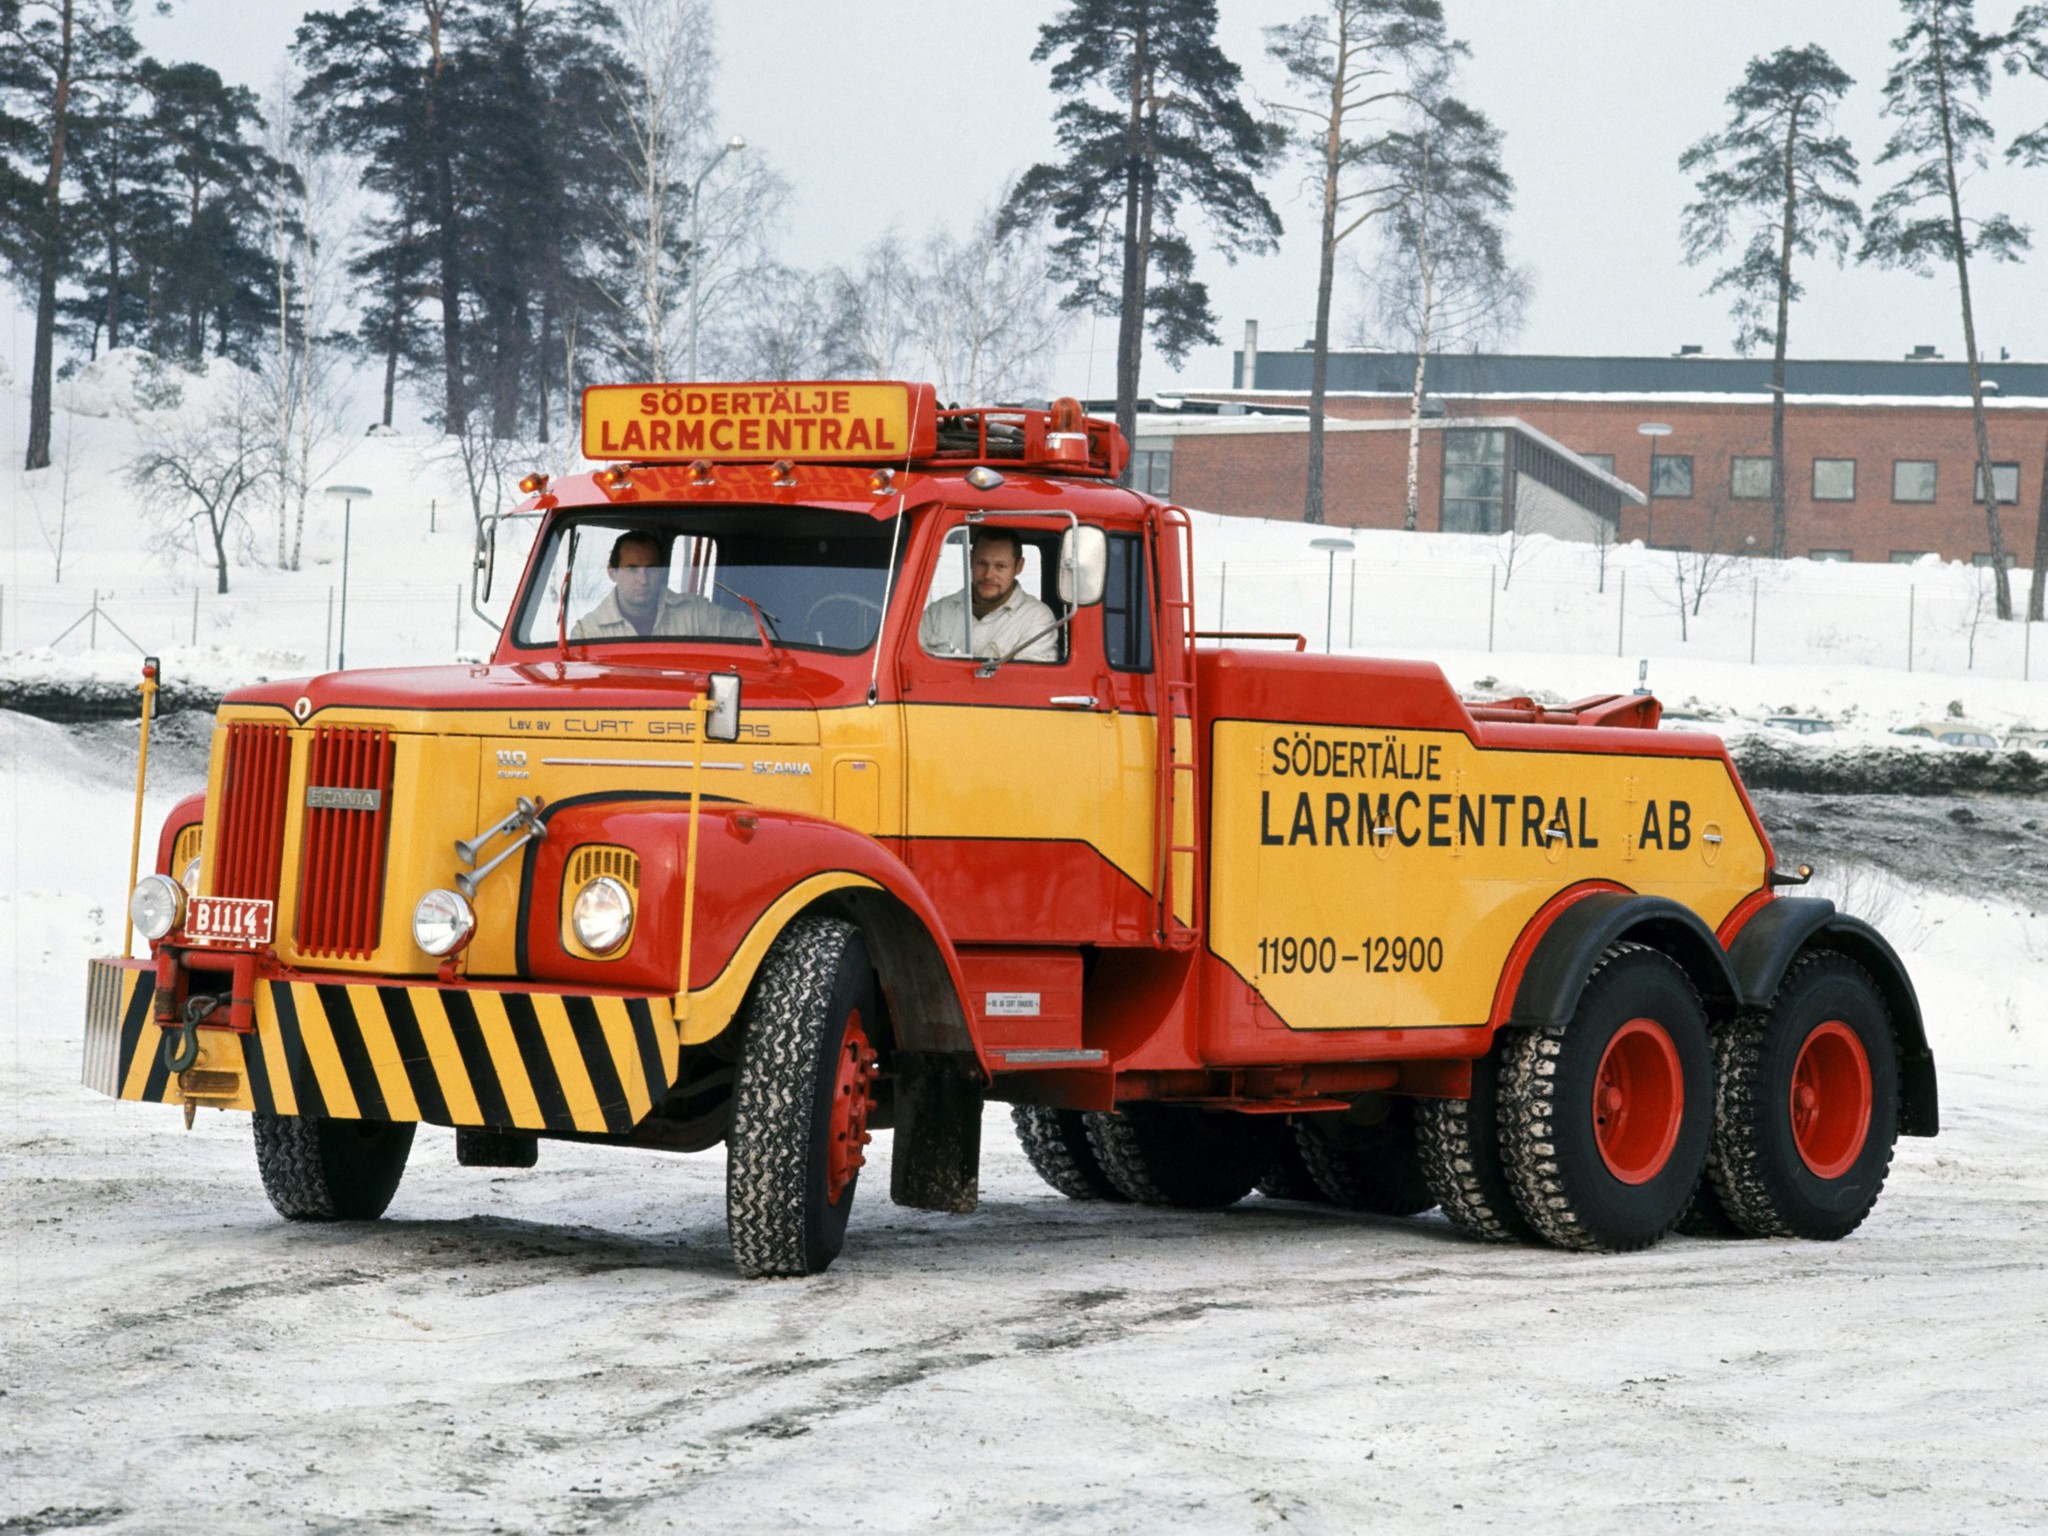 LT110 Recovery Vehicle towtruck emergency semi tractor h wallpaper 2048x1536